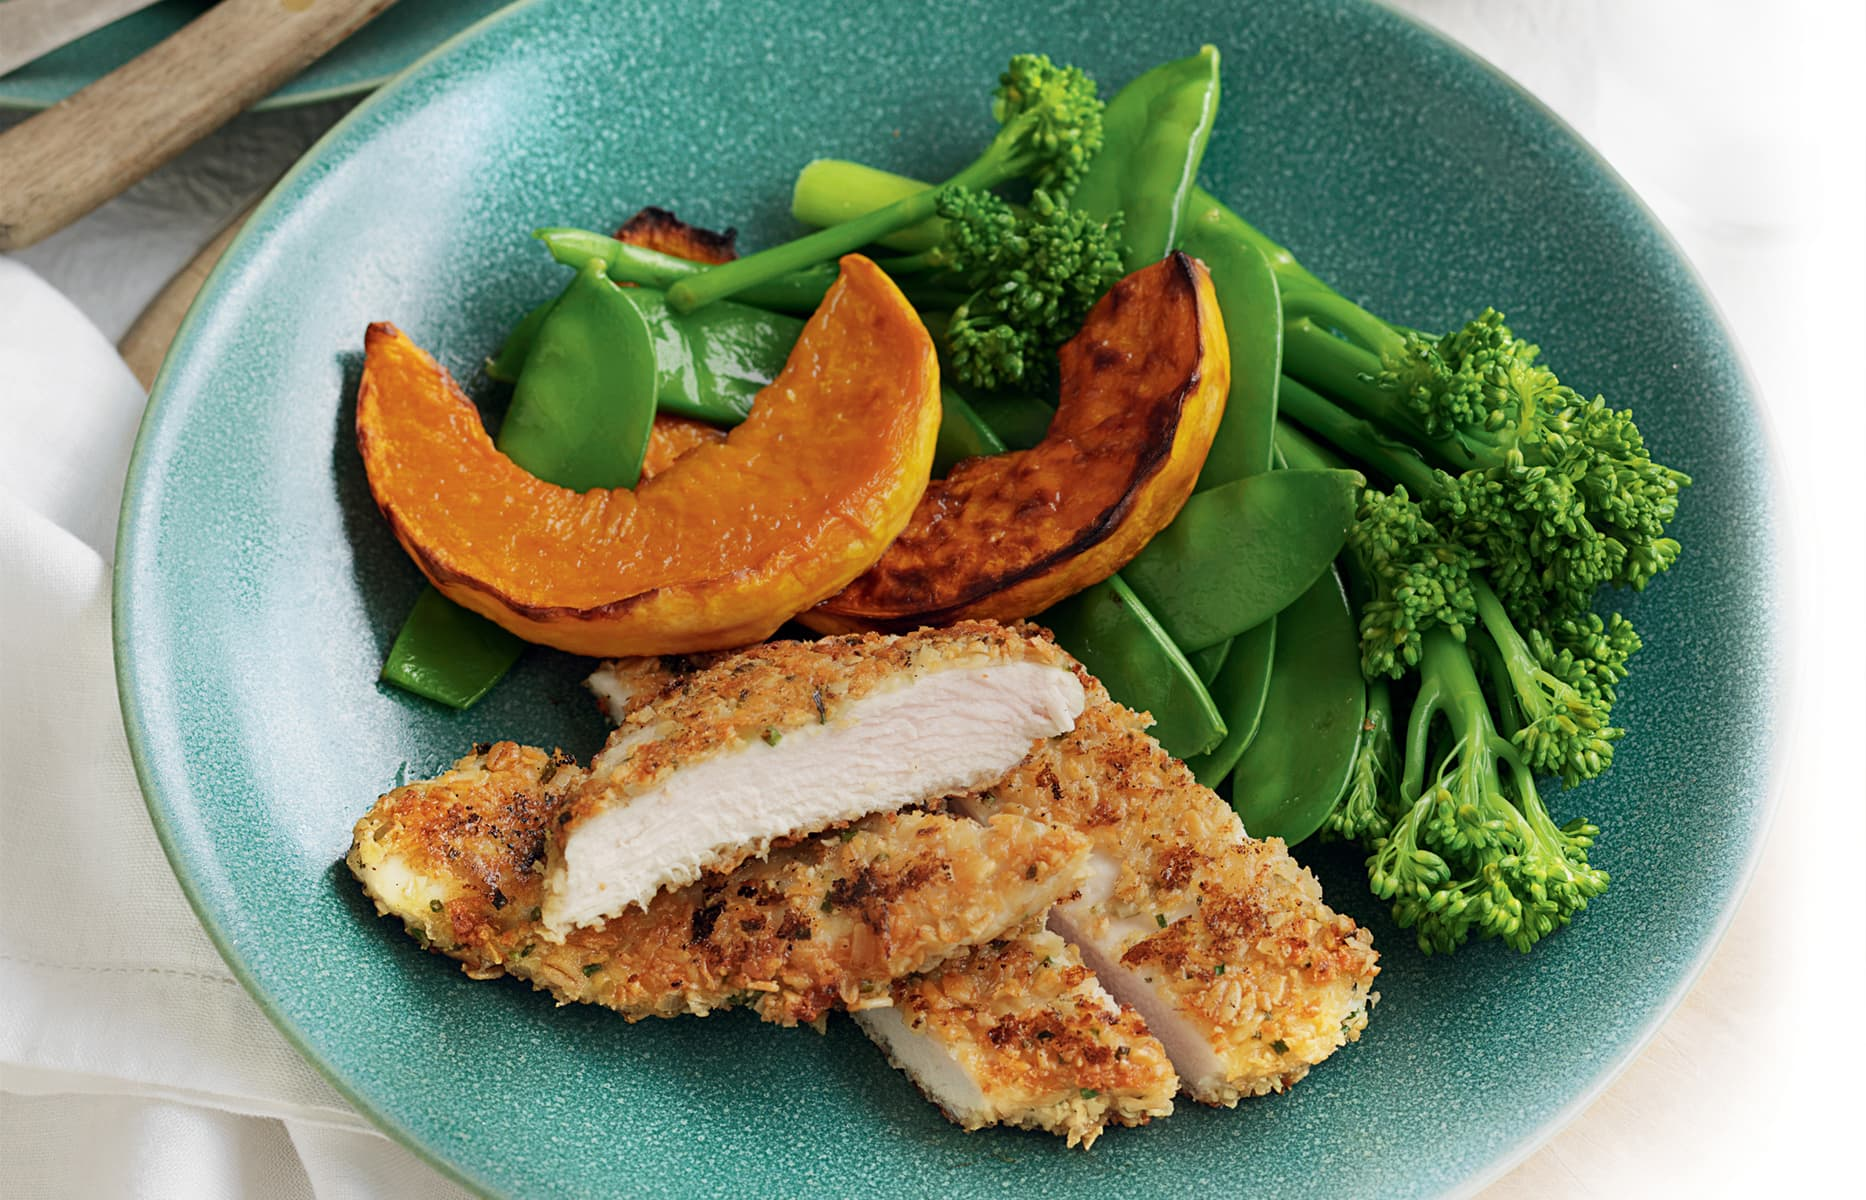 Chicken Schnitzel Pumpkin And Steamed Greens Healthy Food Guide